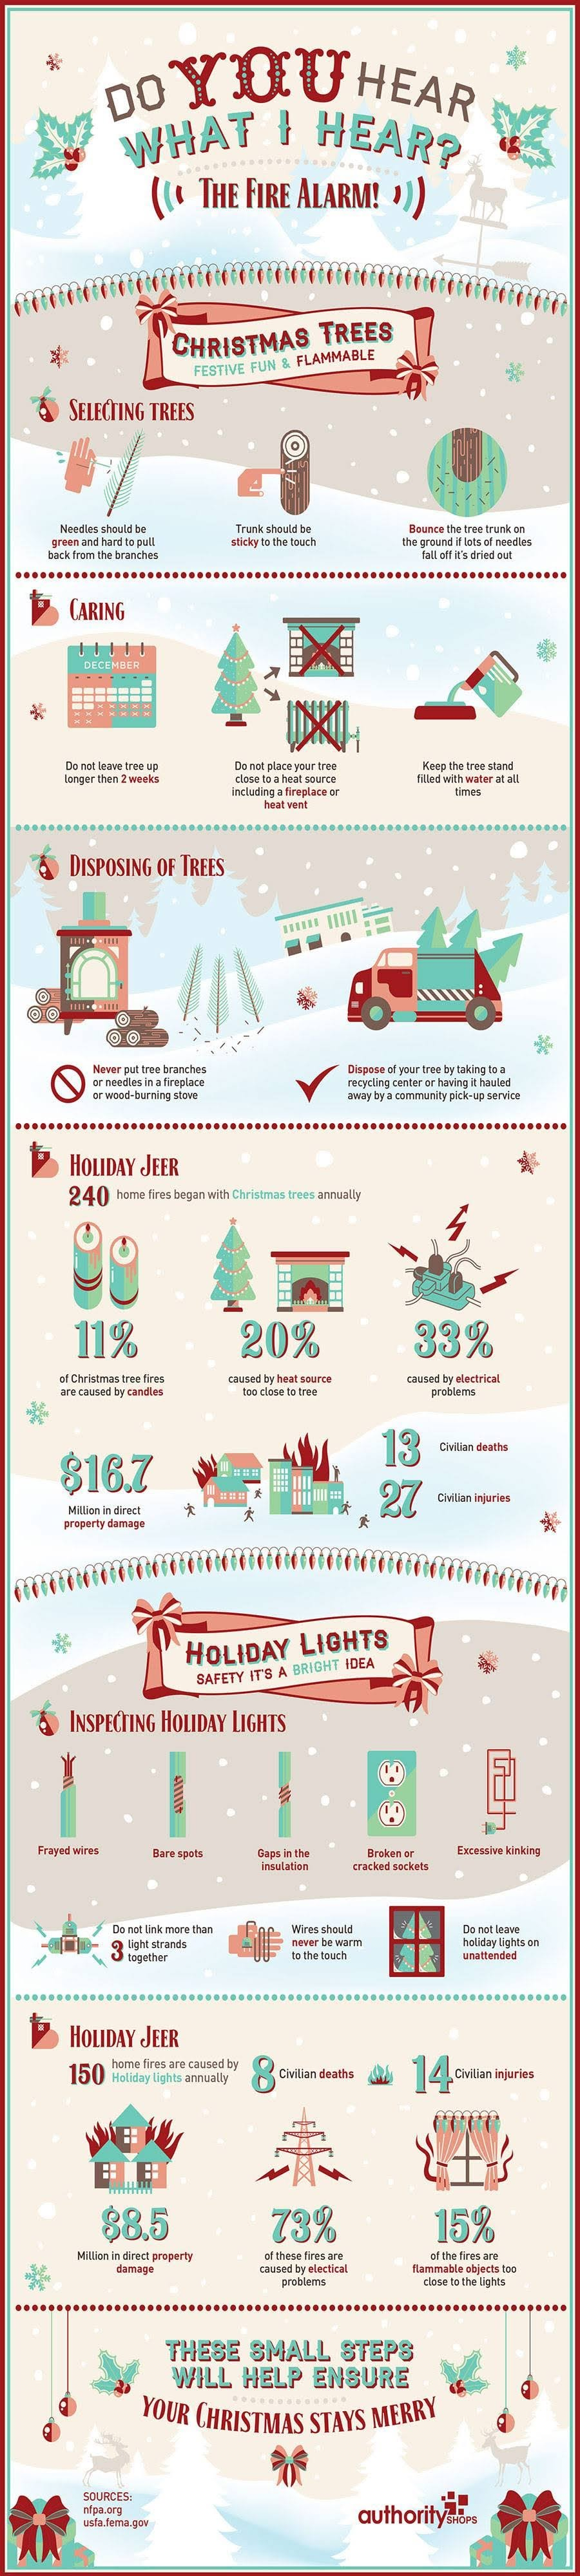 Christmas trees: Festive, fun and flammable #infographic